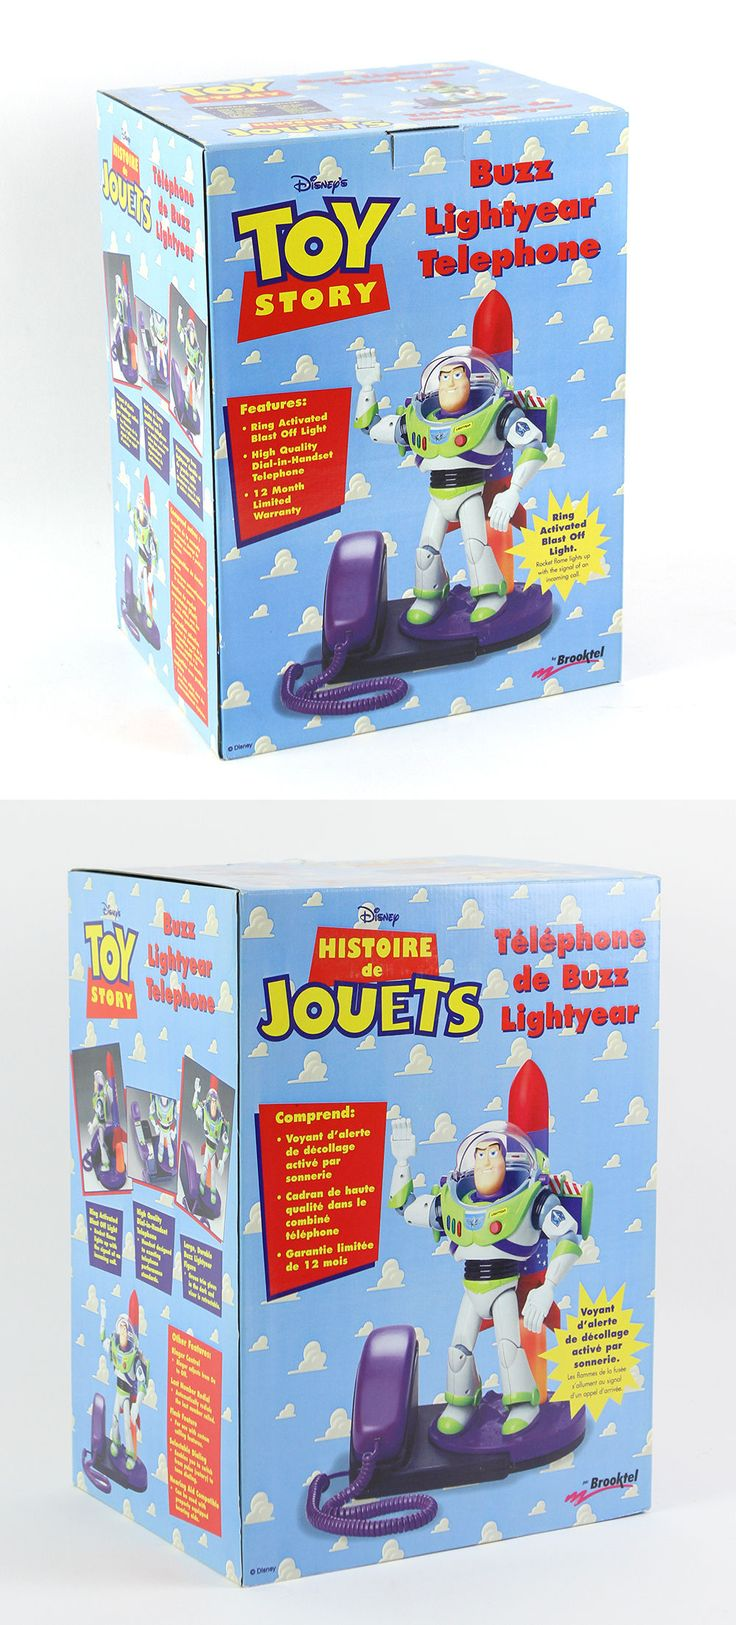 Toy story of terror 1 2 3 buzz lightyear of star command for sale - Toy Story 19223 New Nip Original Packaging 1995 Disney Pixar Toy Story Buzz Lightyear Telephone